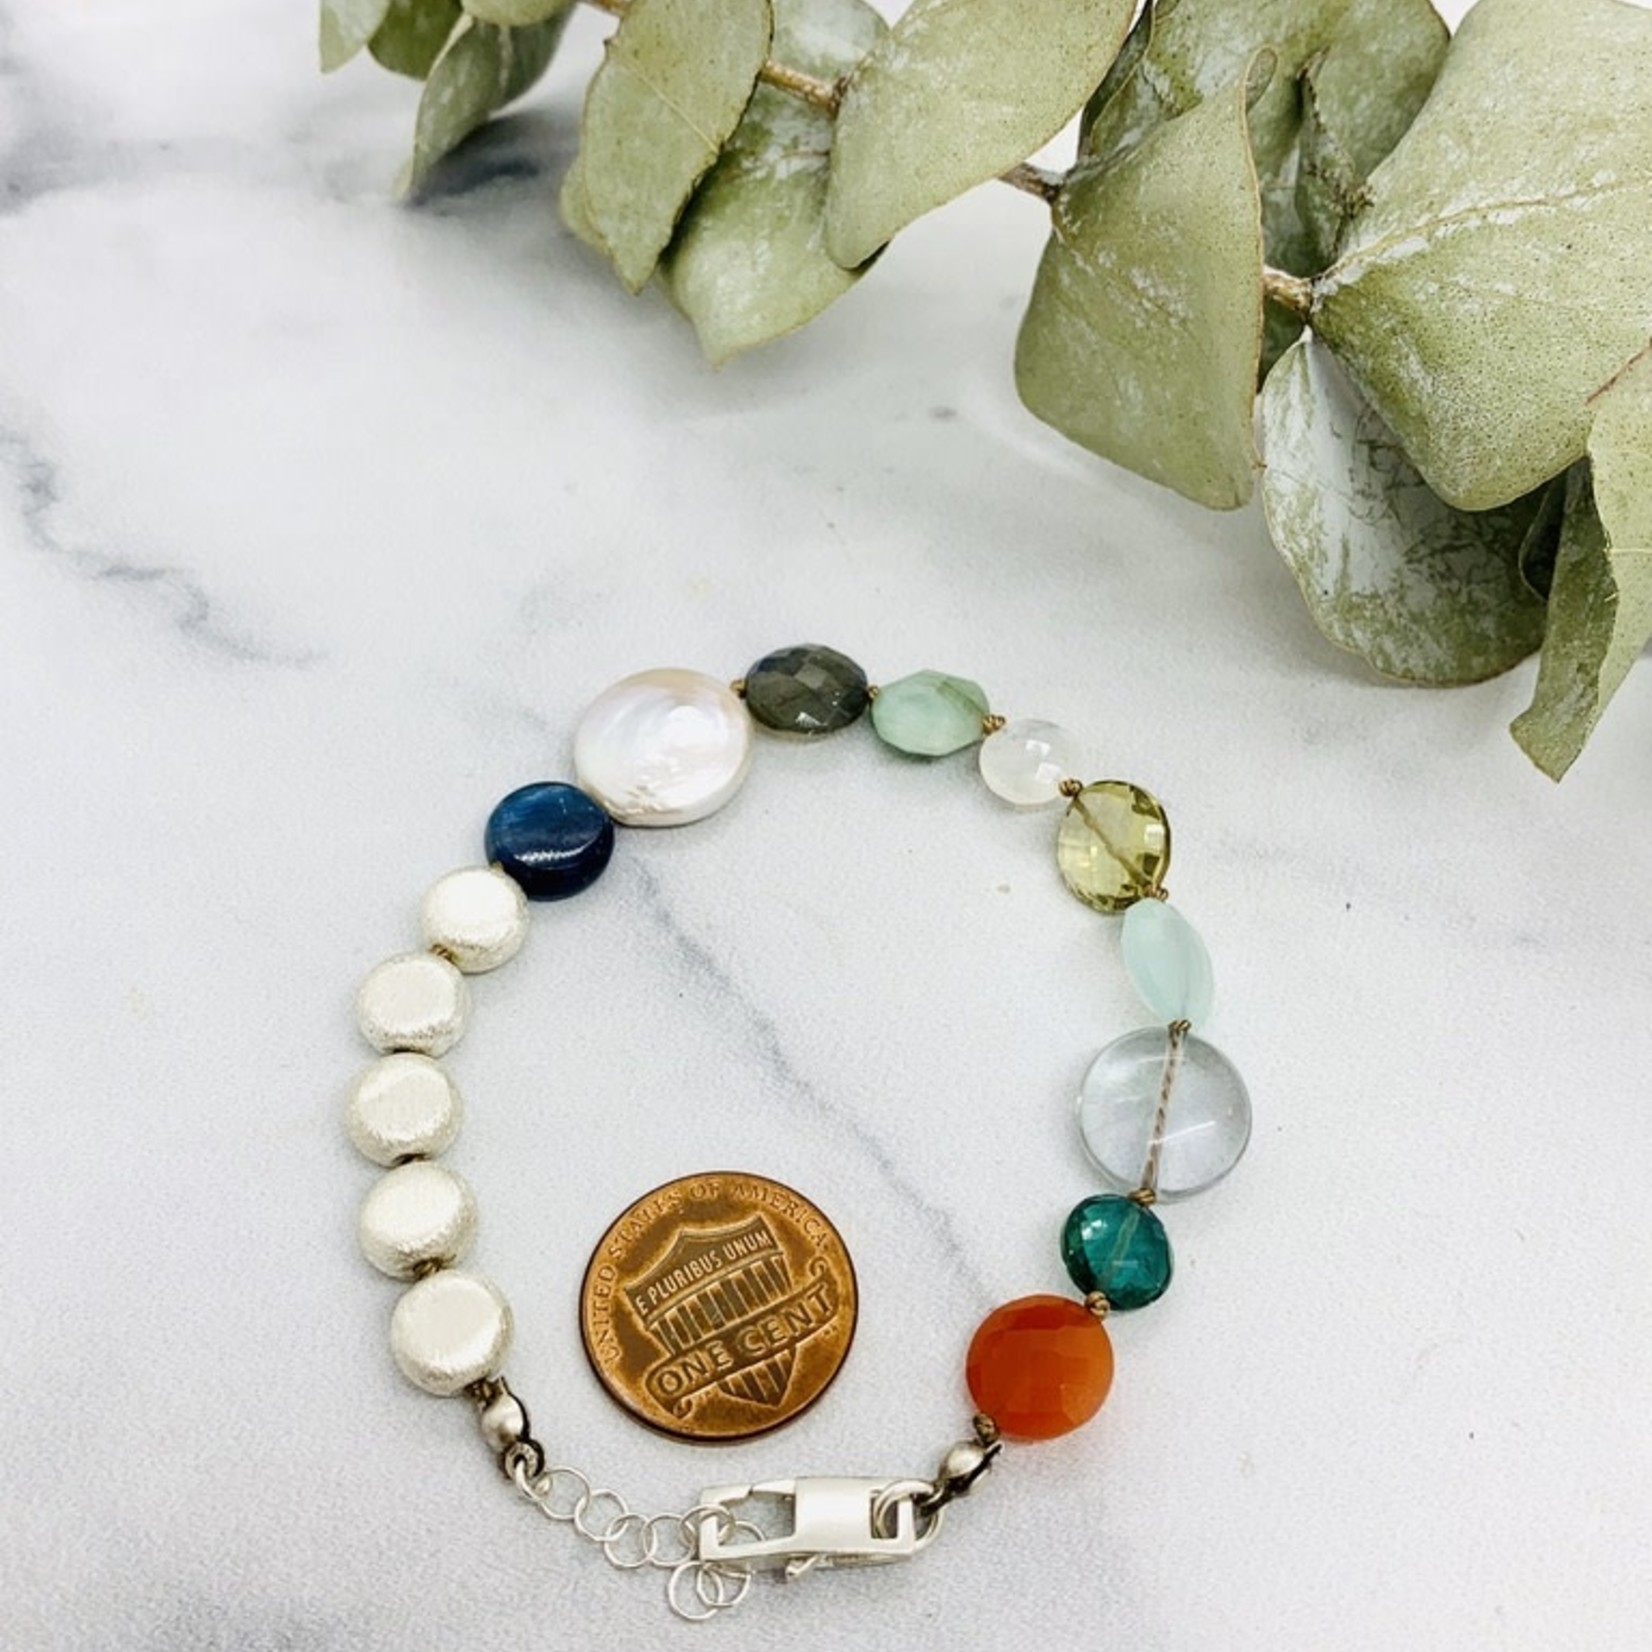 Handmade bracelet with 5 small brushed silver coins, coins: kyanite, white pearl, labradorite, emerald, rainbow moonstone, lemon quartz, peruvian chalcedony, fluorite, green hydro, carnelian knotted on natural silk